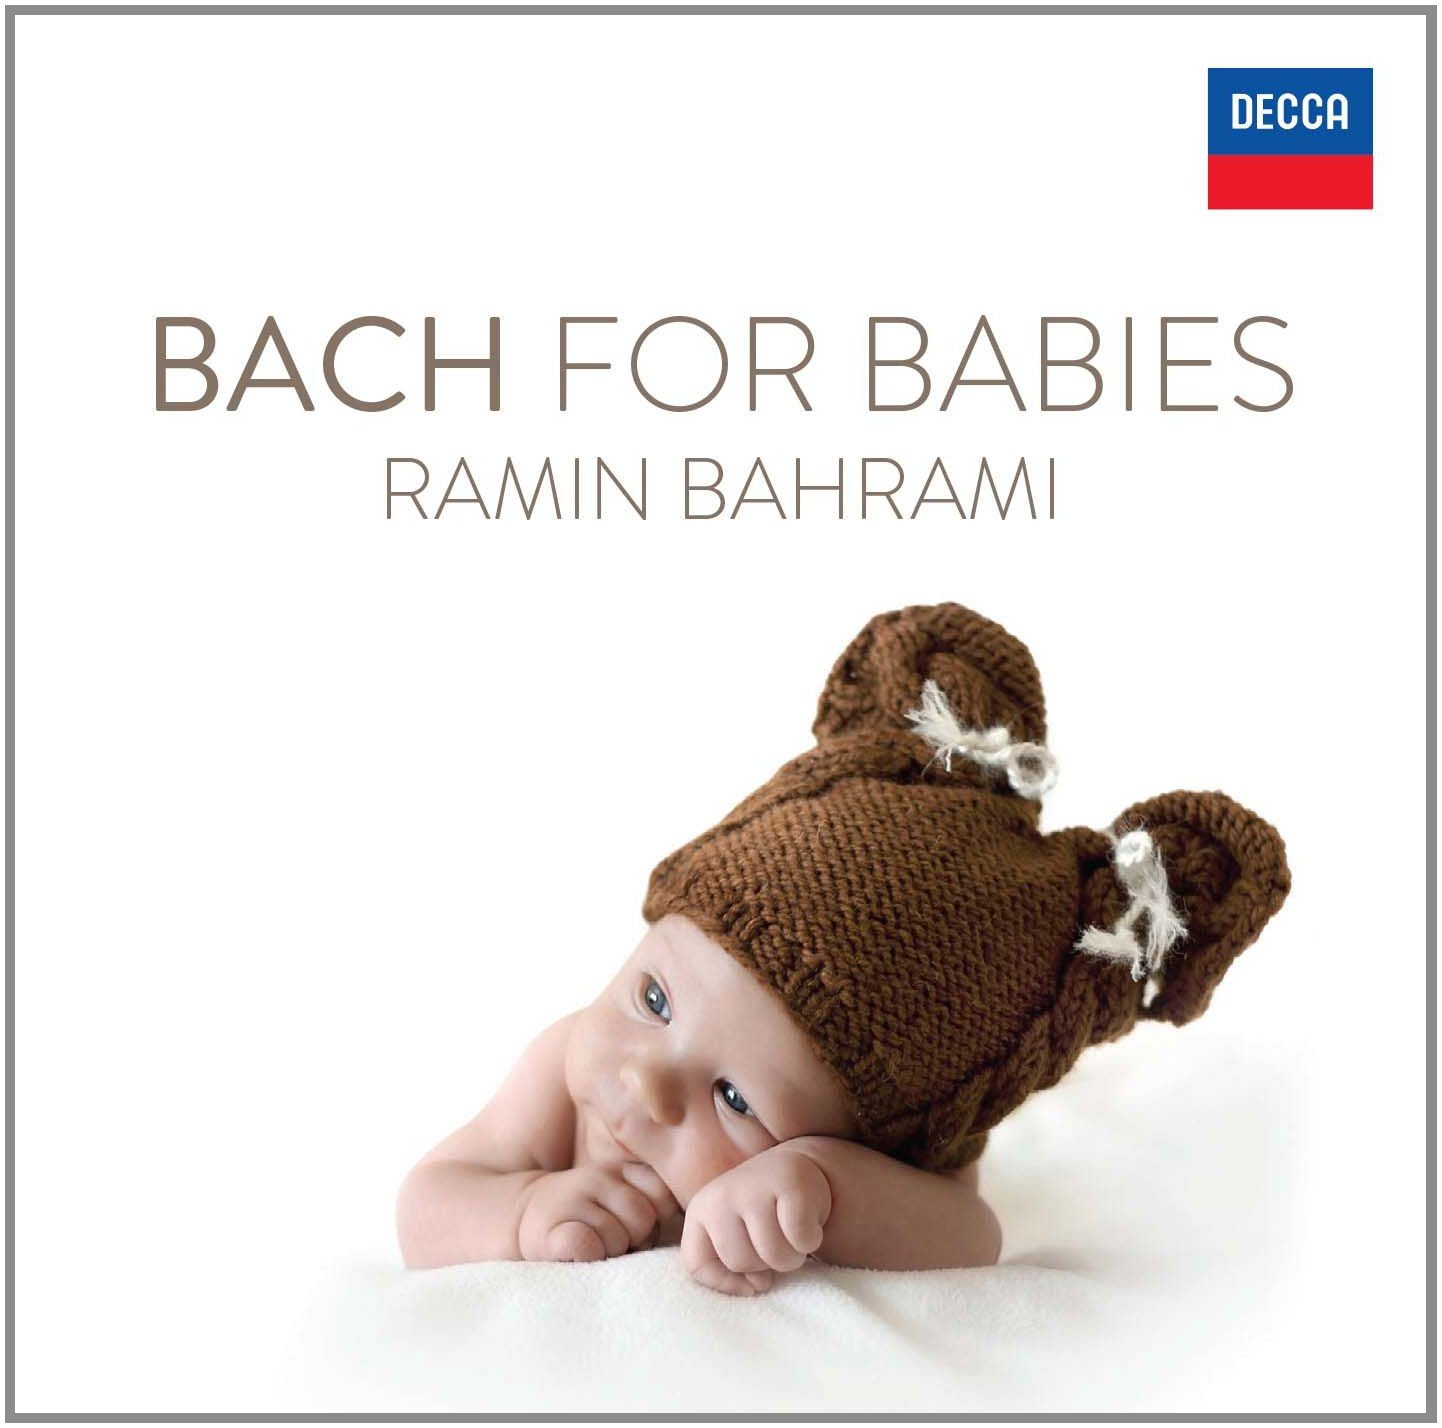 JOHANN SEBASTIAN BACH - BACH FOR BABIES (CD)